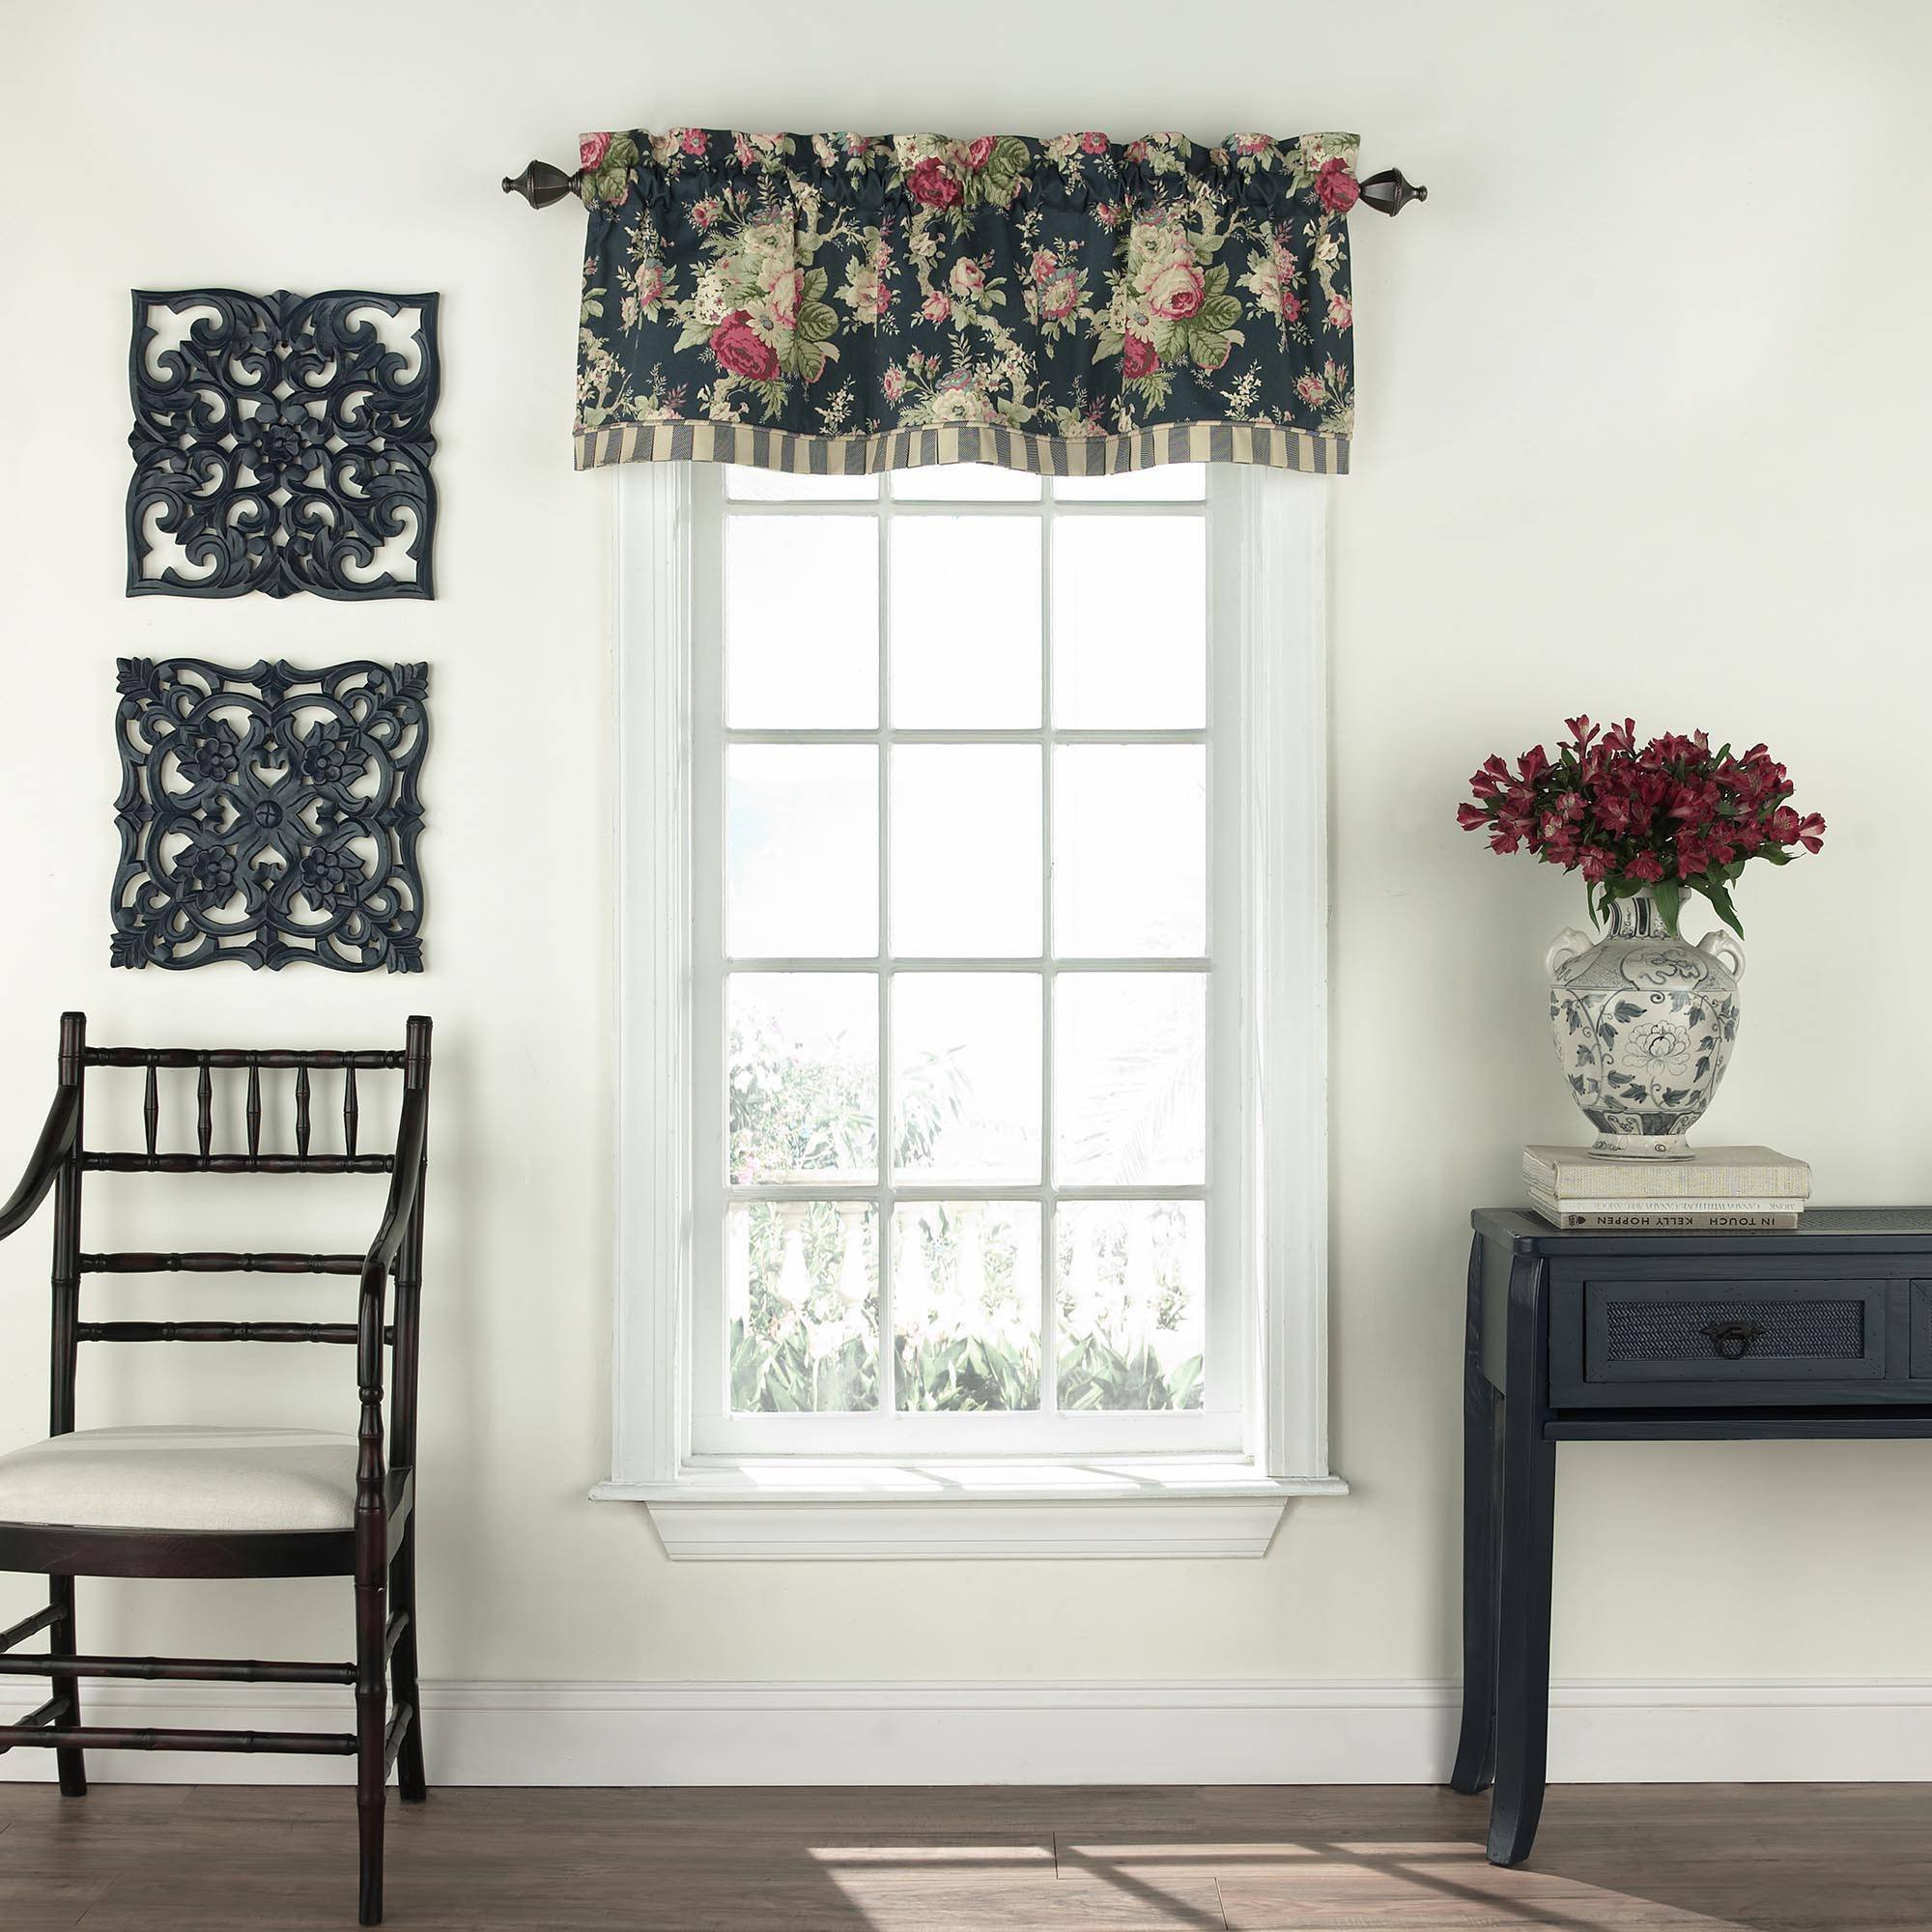 Waverly Sanctuary Rose Floral Valance